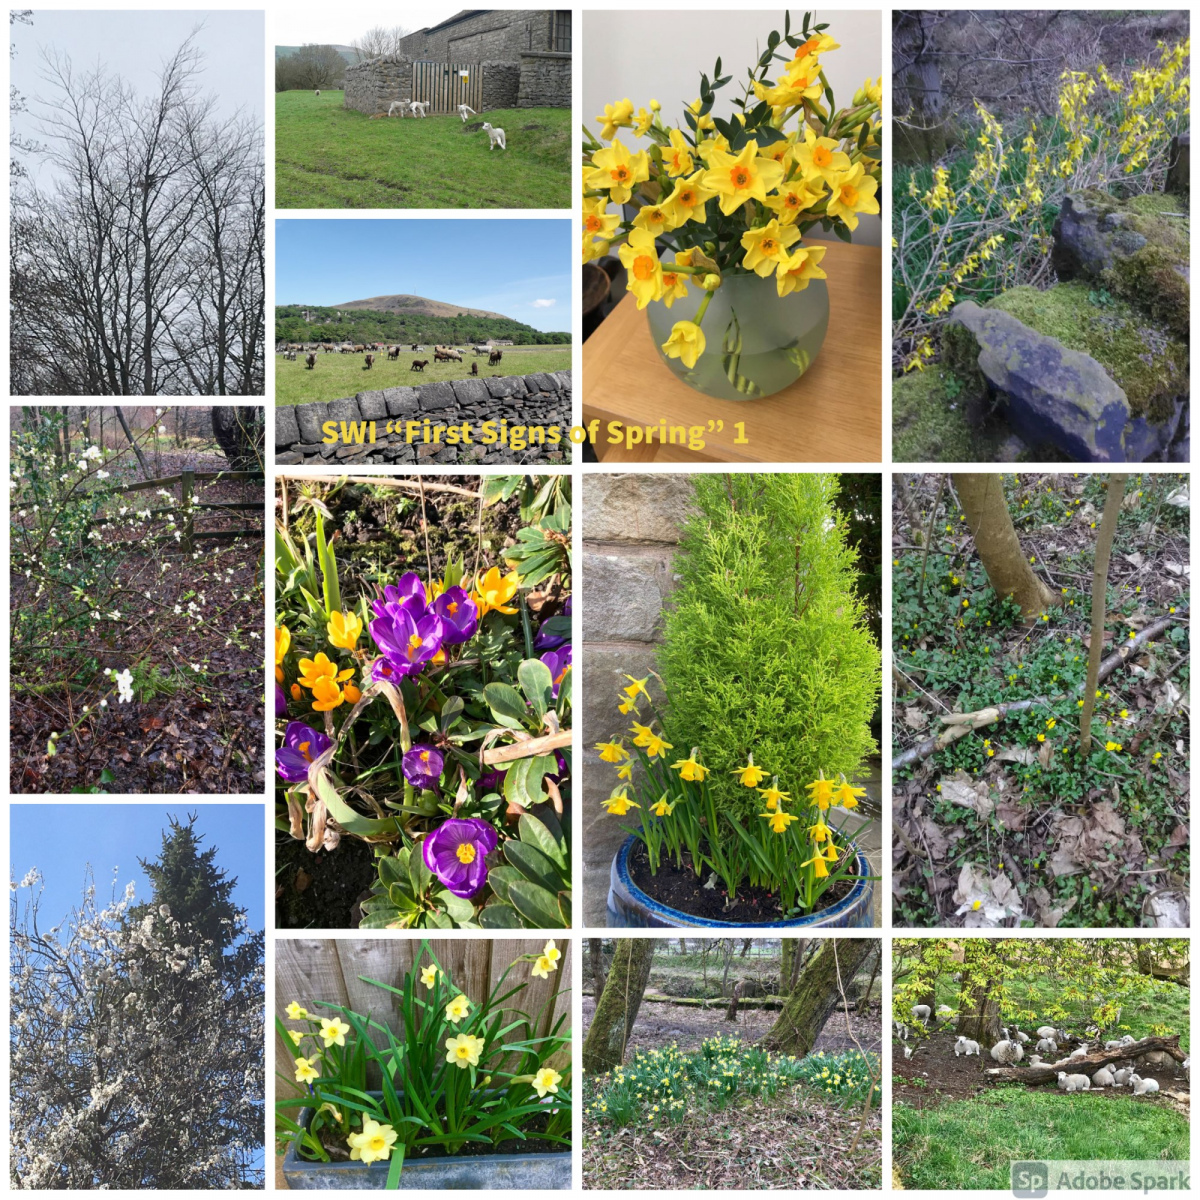 SWI-First-Signs-of-Spring-part1